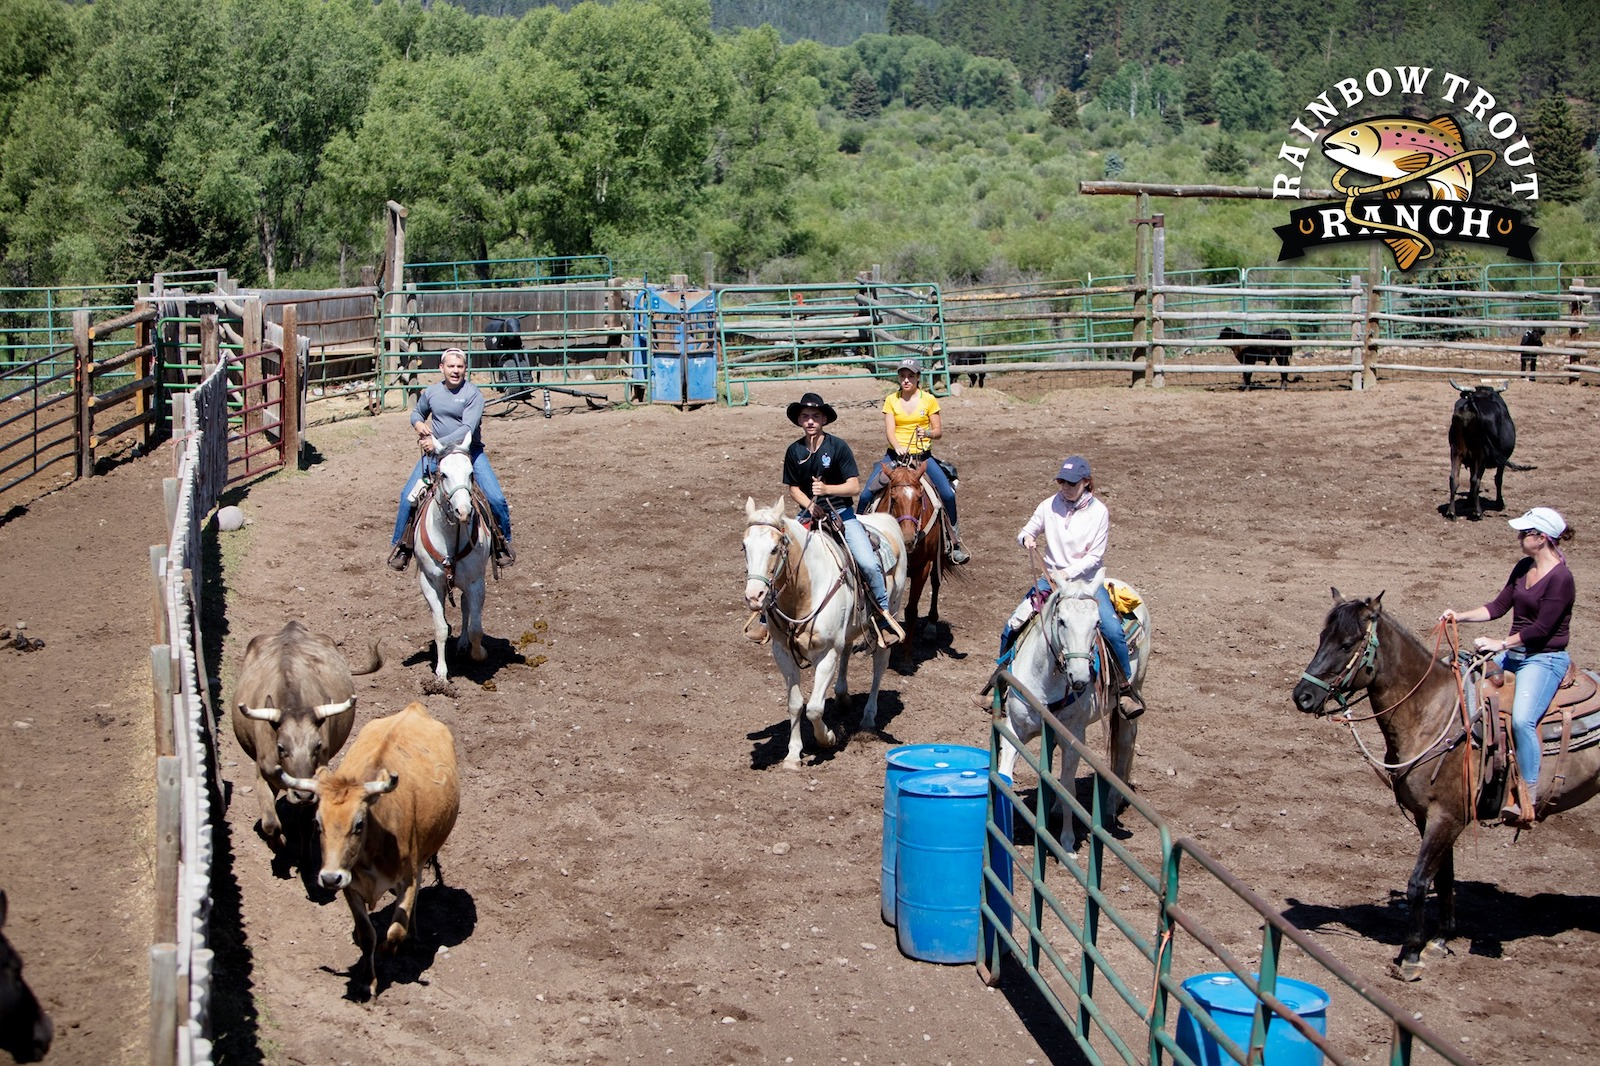 Image of people herding cattle at Rainbow Trout Ranch in Colorado